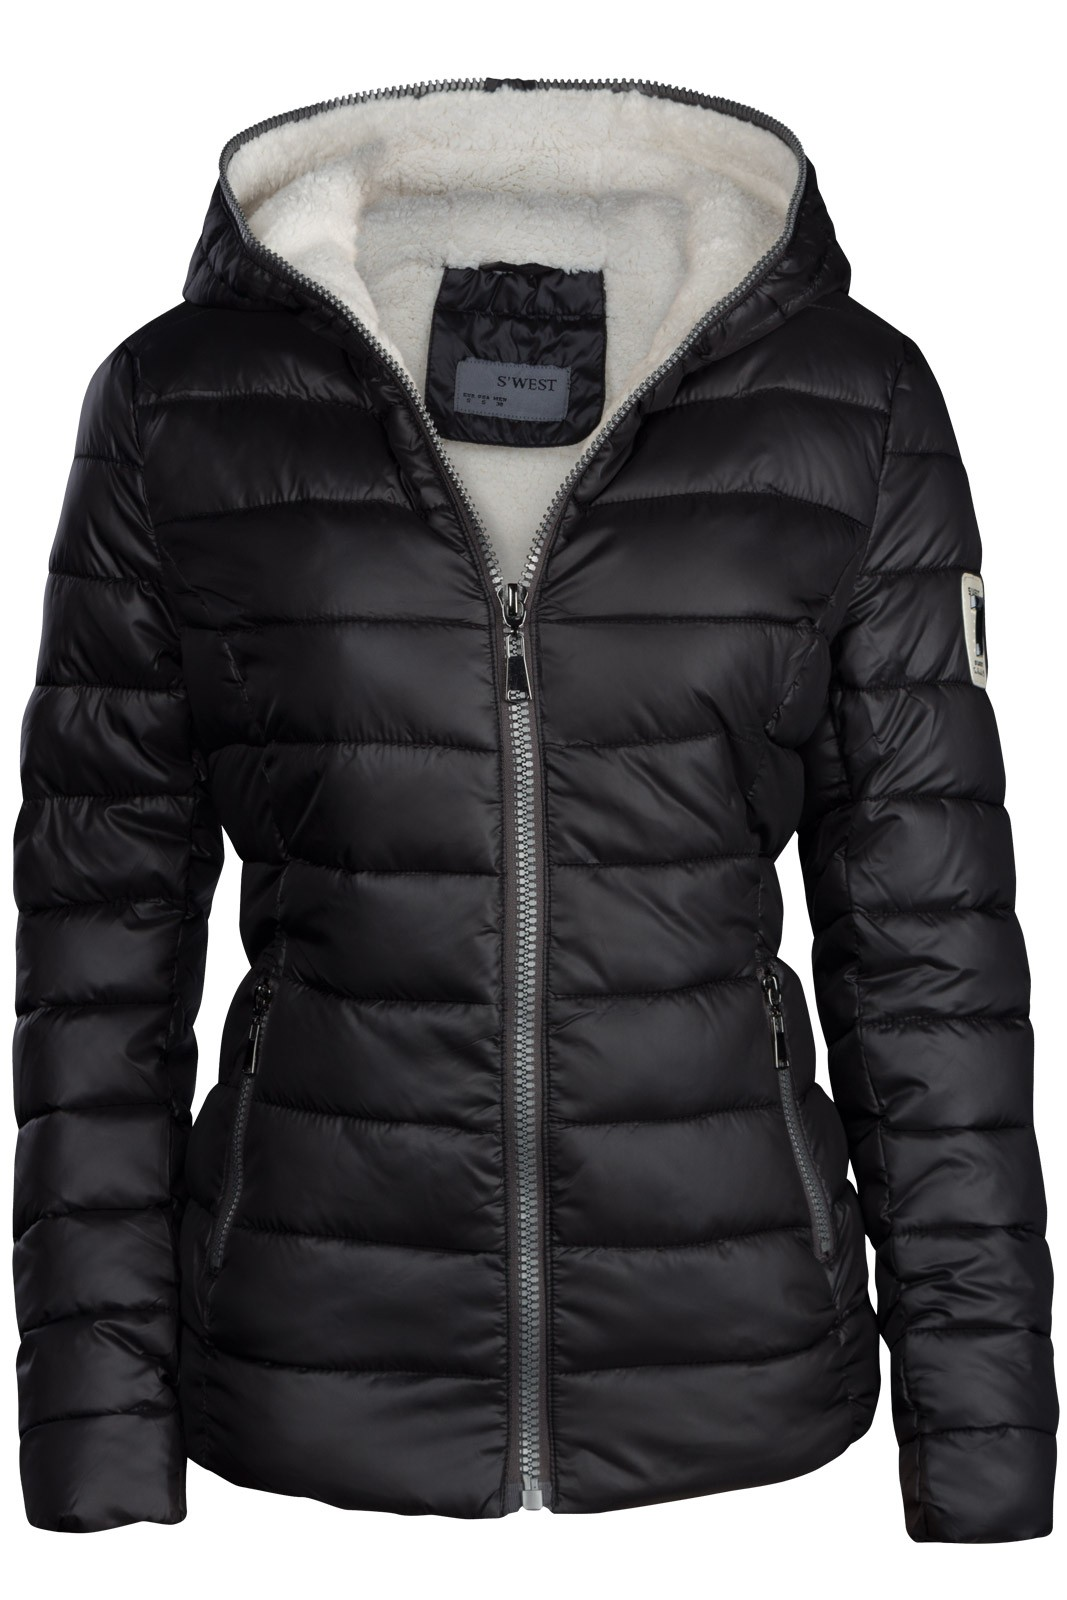 best website aff4d ed853 Damen Winterjacke Gefütterte Steppjacke Daunen Optik mit Kapuze